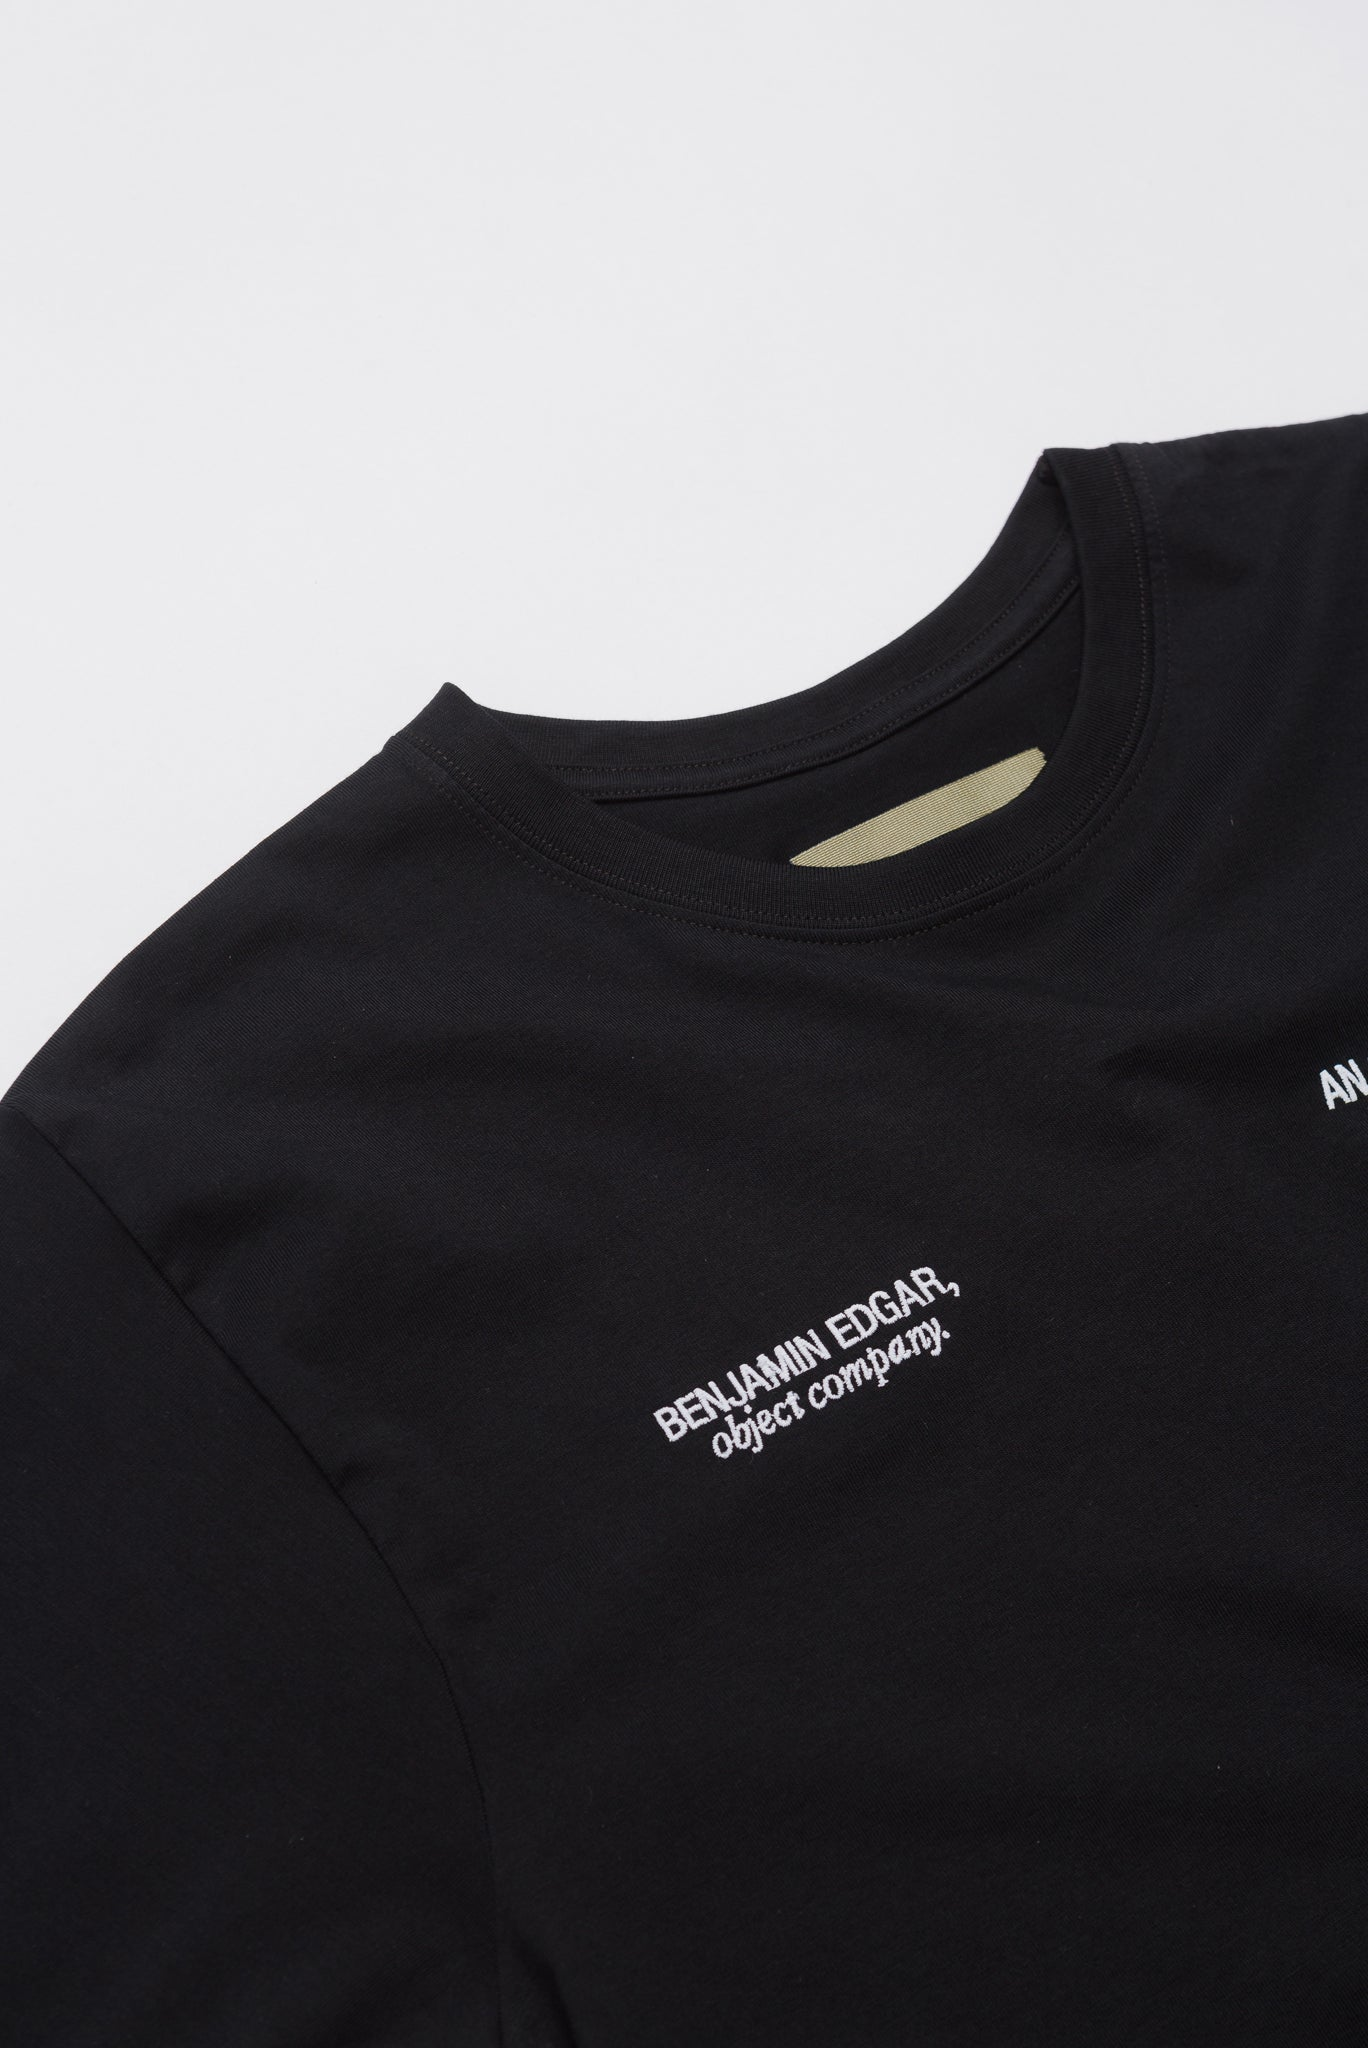 """All The Way Through"" #1 Embroidered Simple T-Shirt"